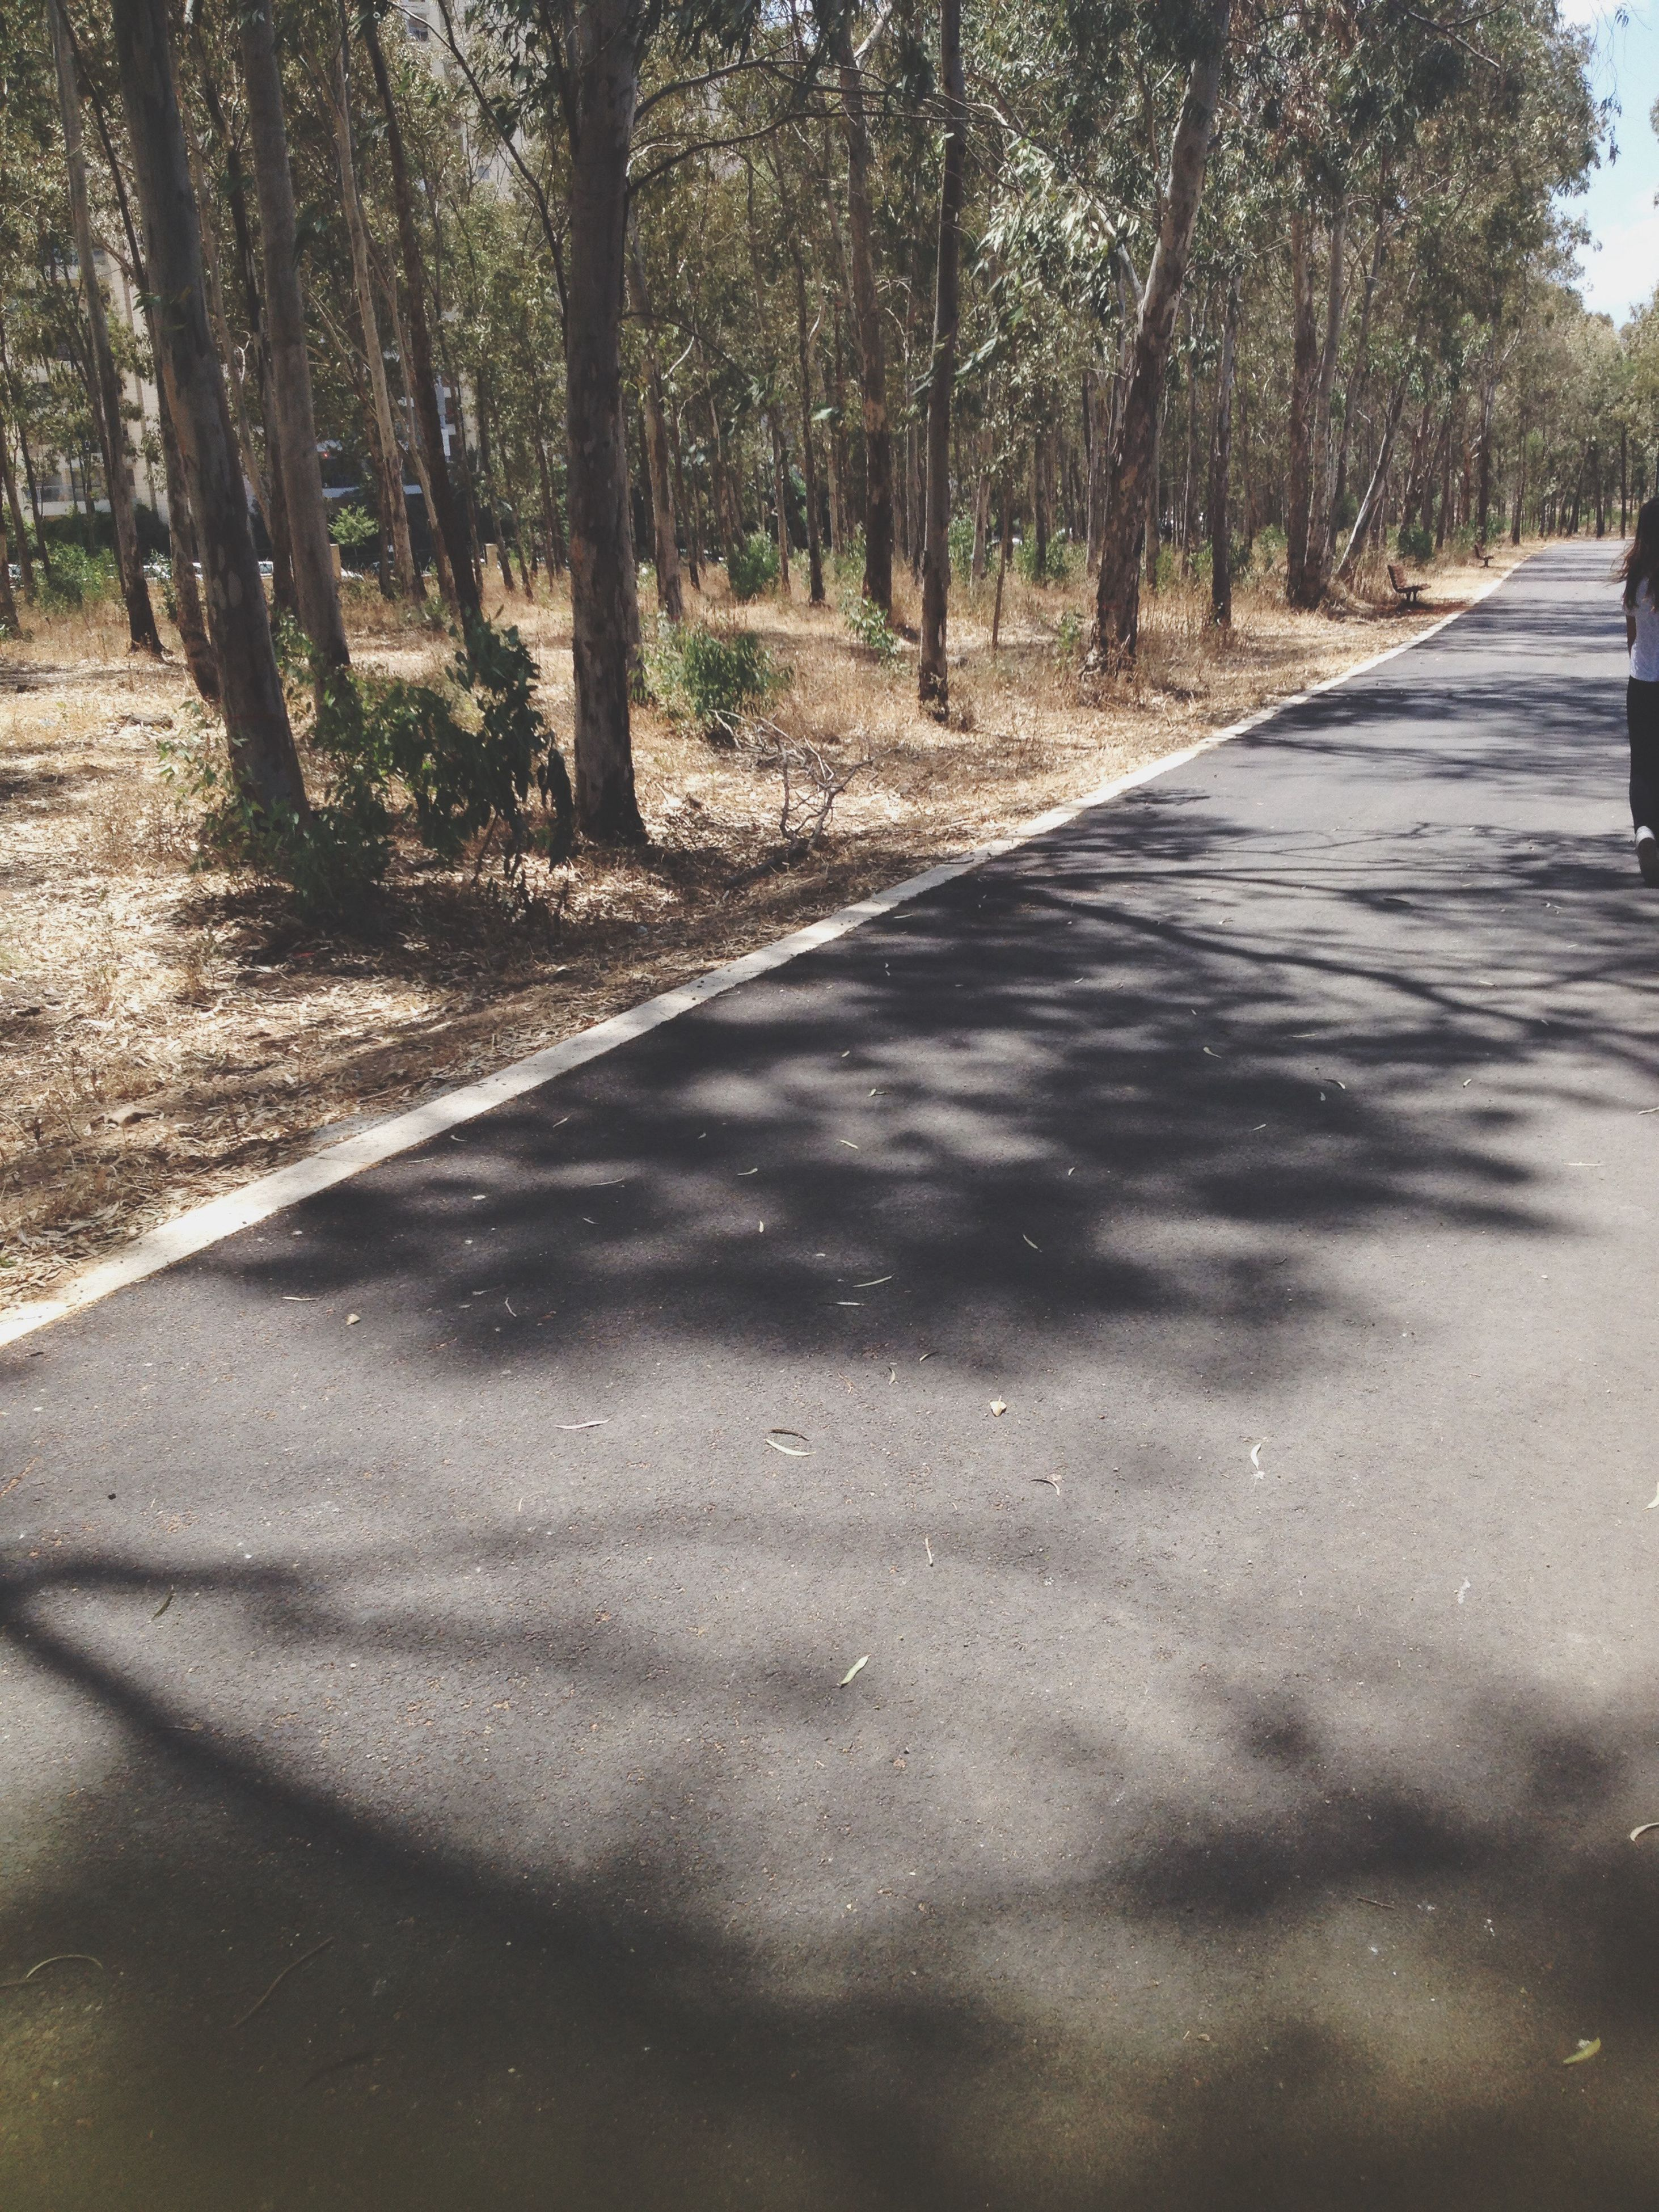 tree, the way forward, diminishing perspective, road, vanishing point, tranquility, treelined, shadow, transportation, tree trunk, sunlight, surface level, nature, tranquil scene, dirt road, growth, street, footpath, day, outdoors